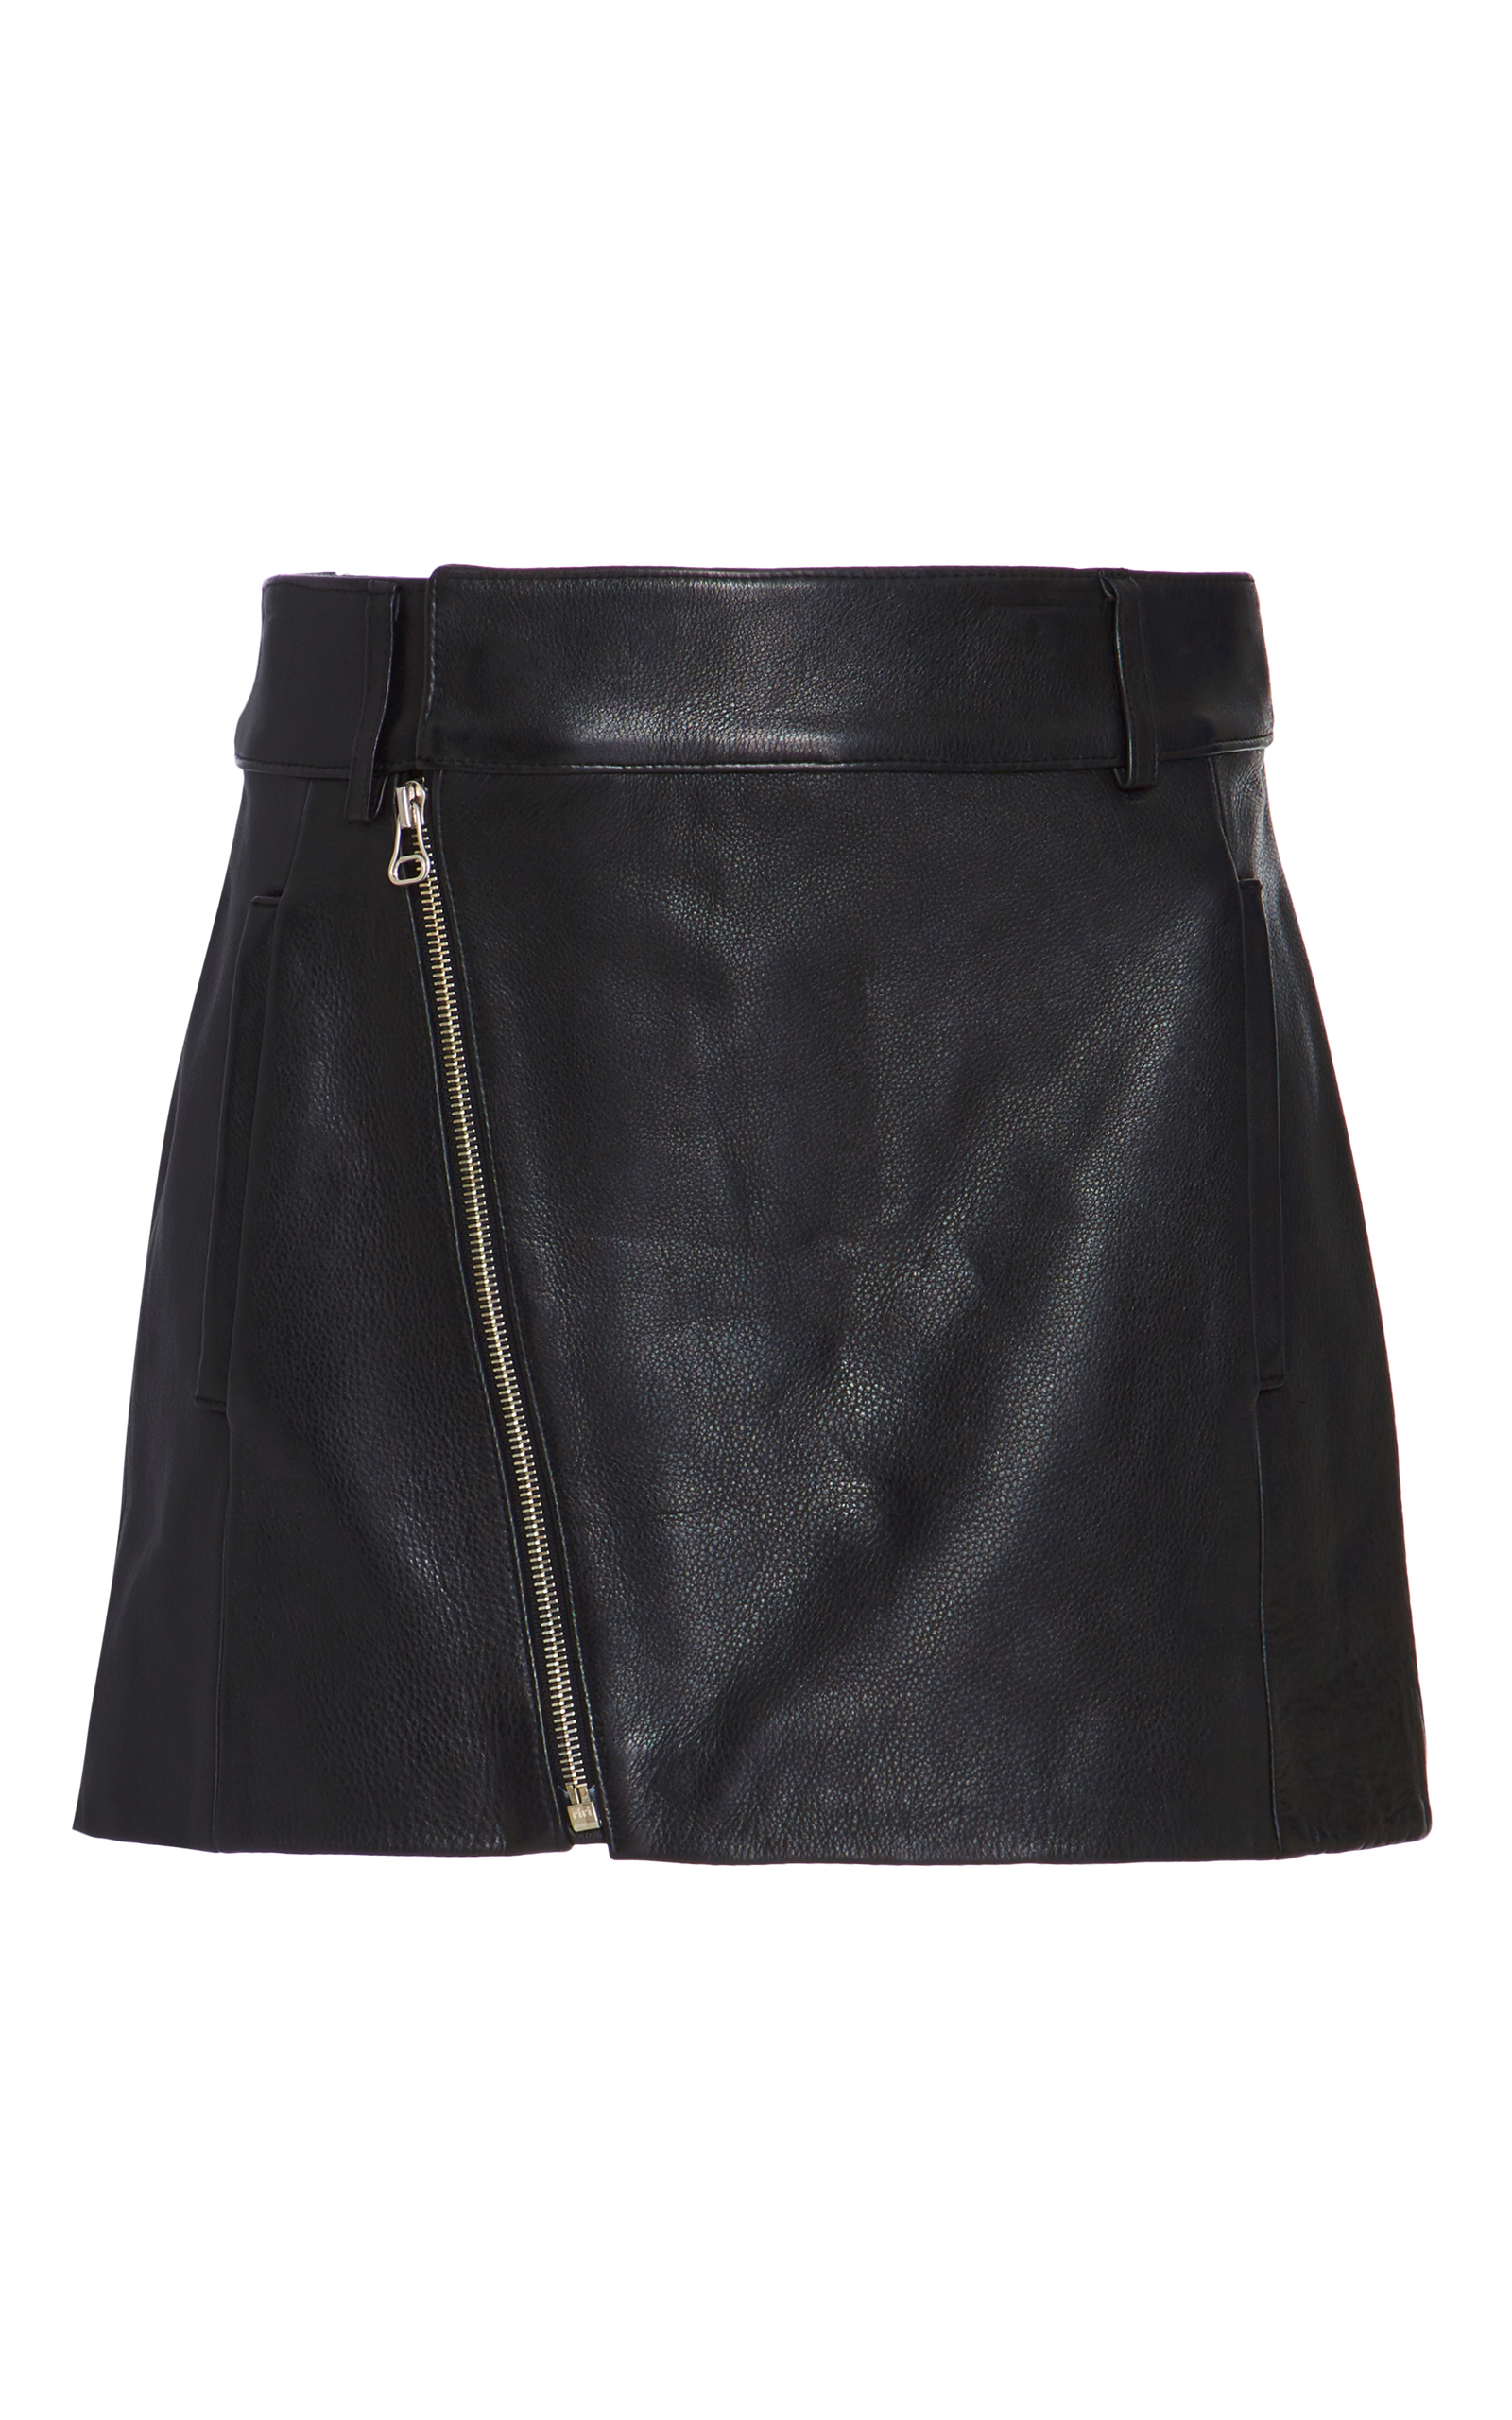 12a5acb8d9 Dion Lee Leather Biker Mini Skirt